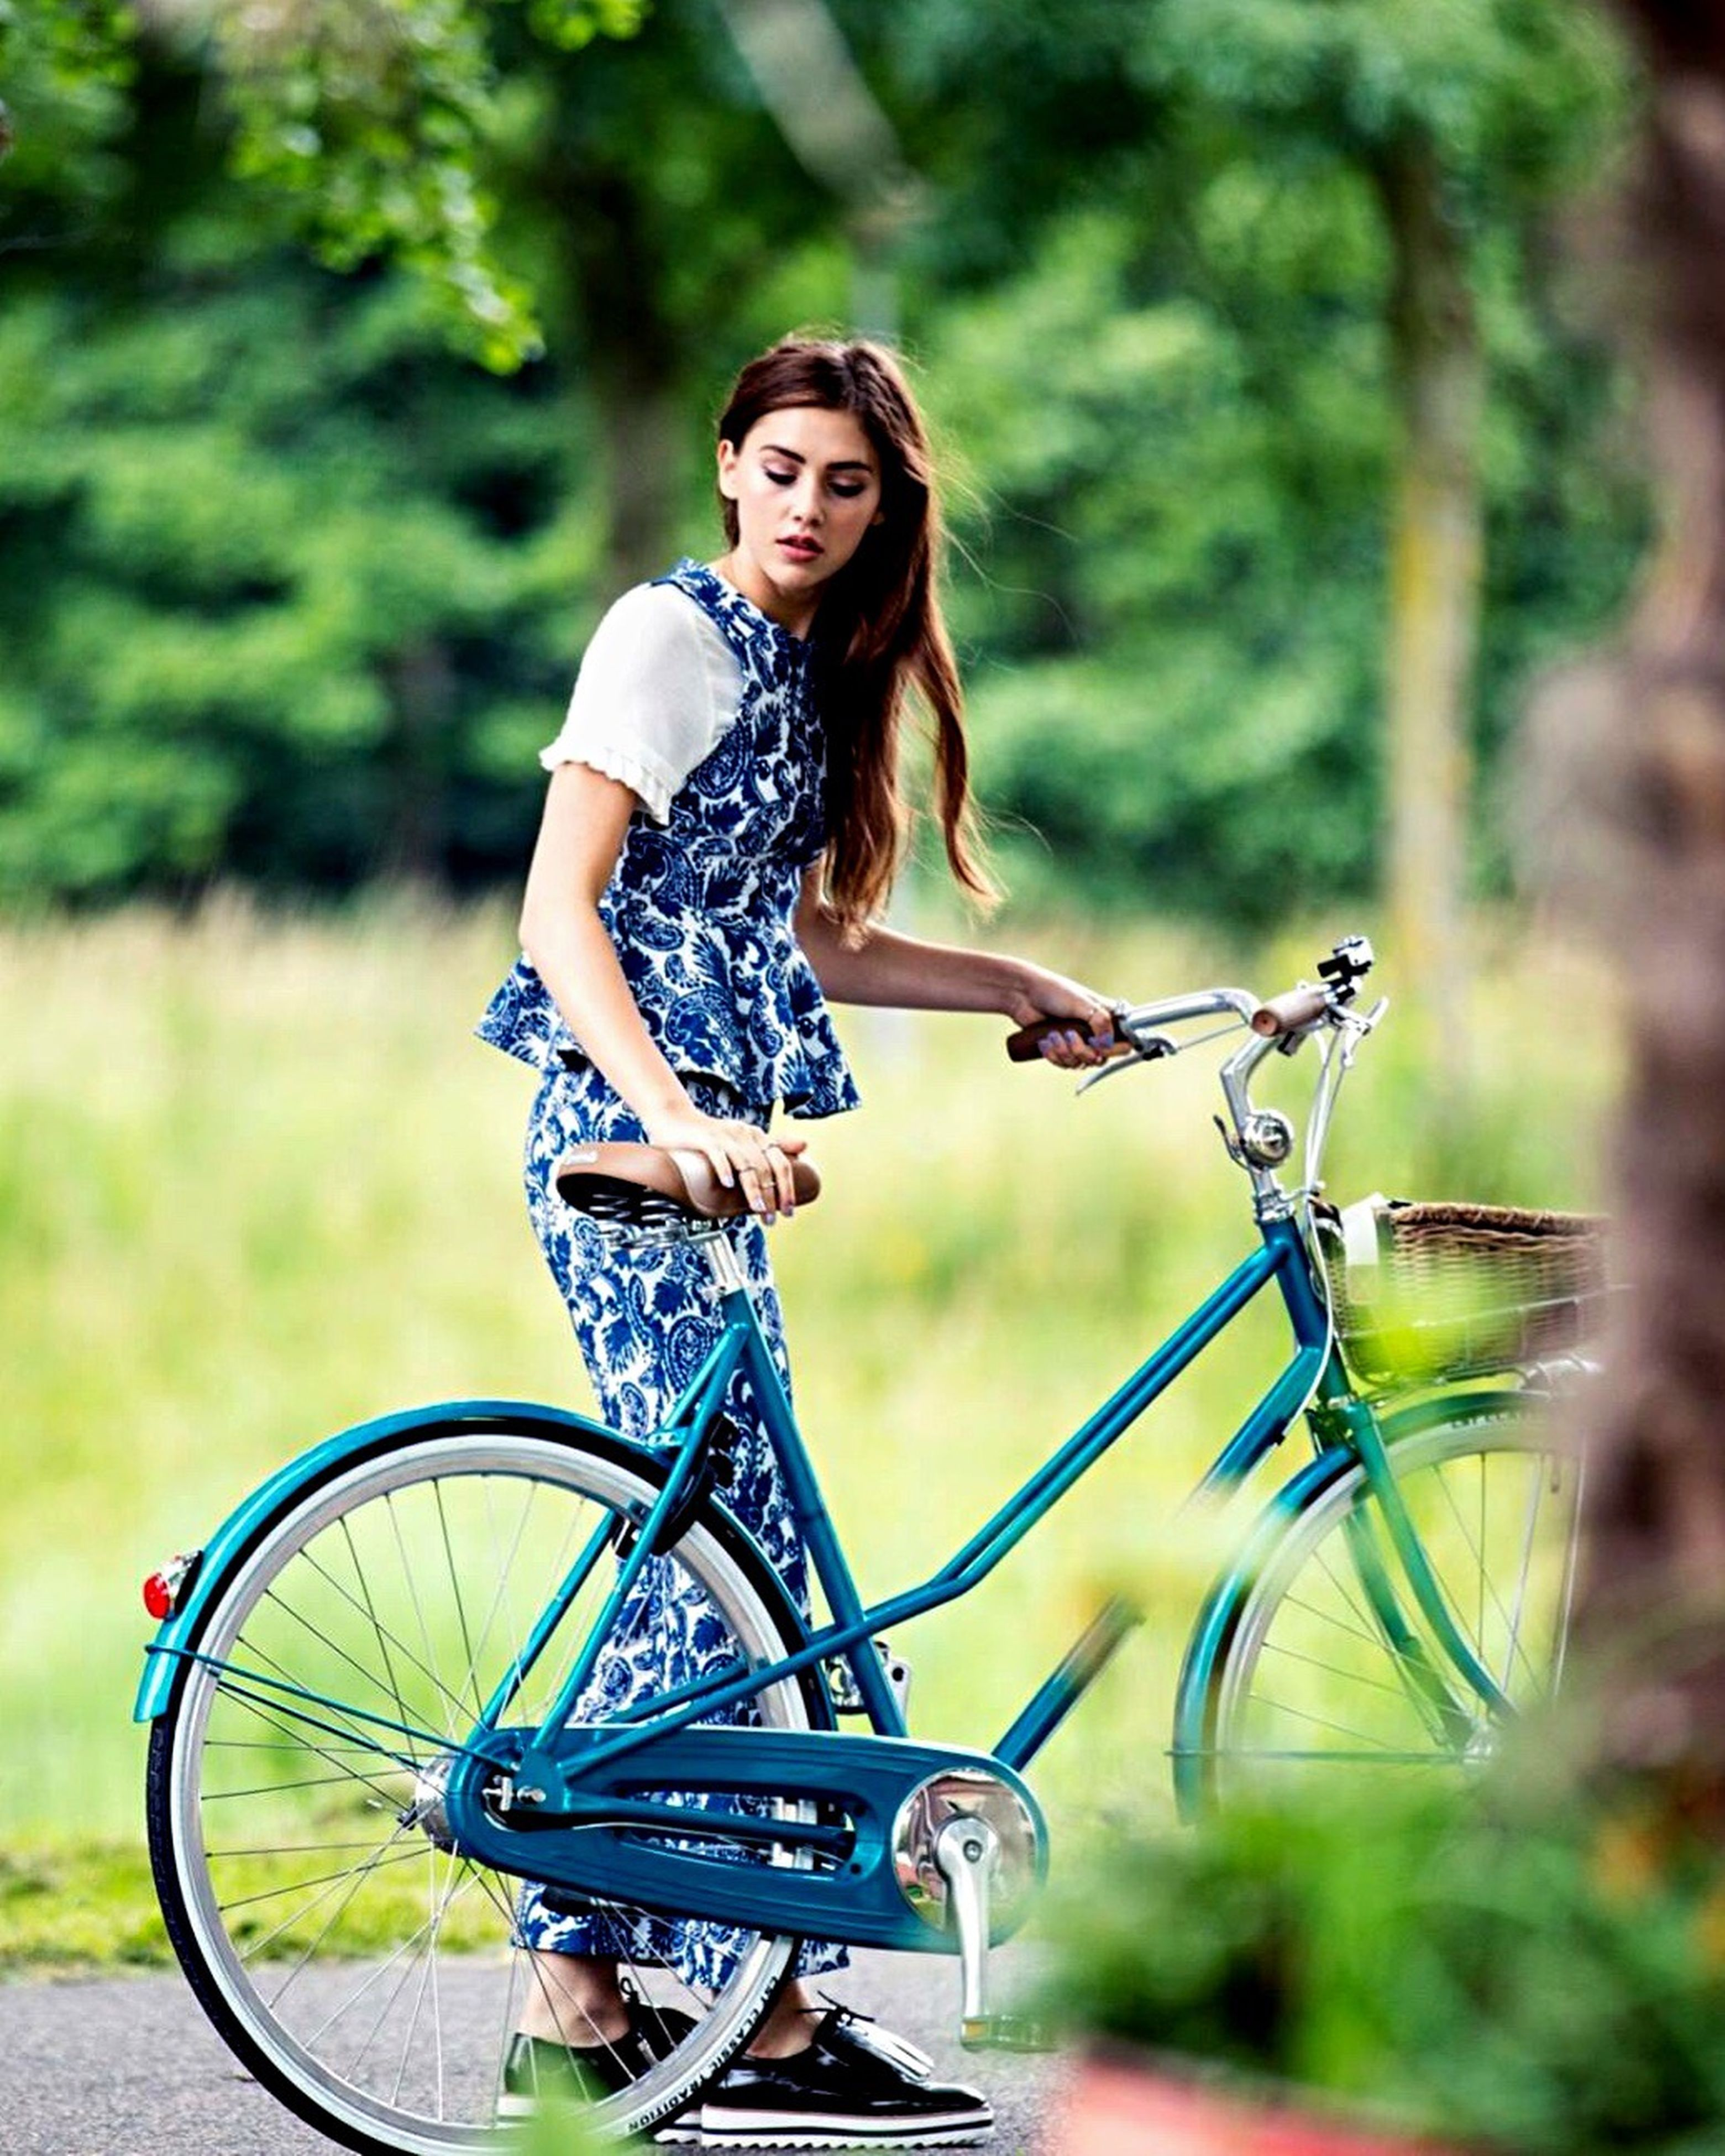 transportation, bicycle, young adult, mode of transport, leisure activity, travel, casual clothing, young women, lifestyles, focus on foreground, fruit, holding, smiling, person, front view, tourism, long hair, land vehicle, plant, looking at camera, vacations, posing